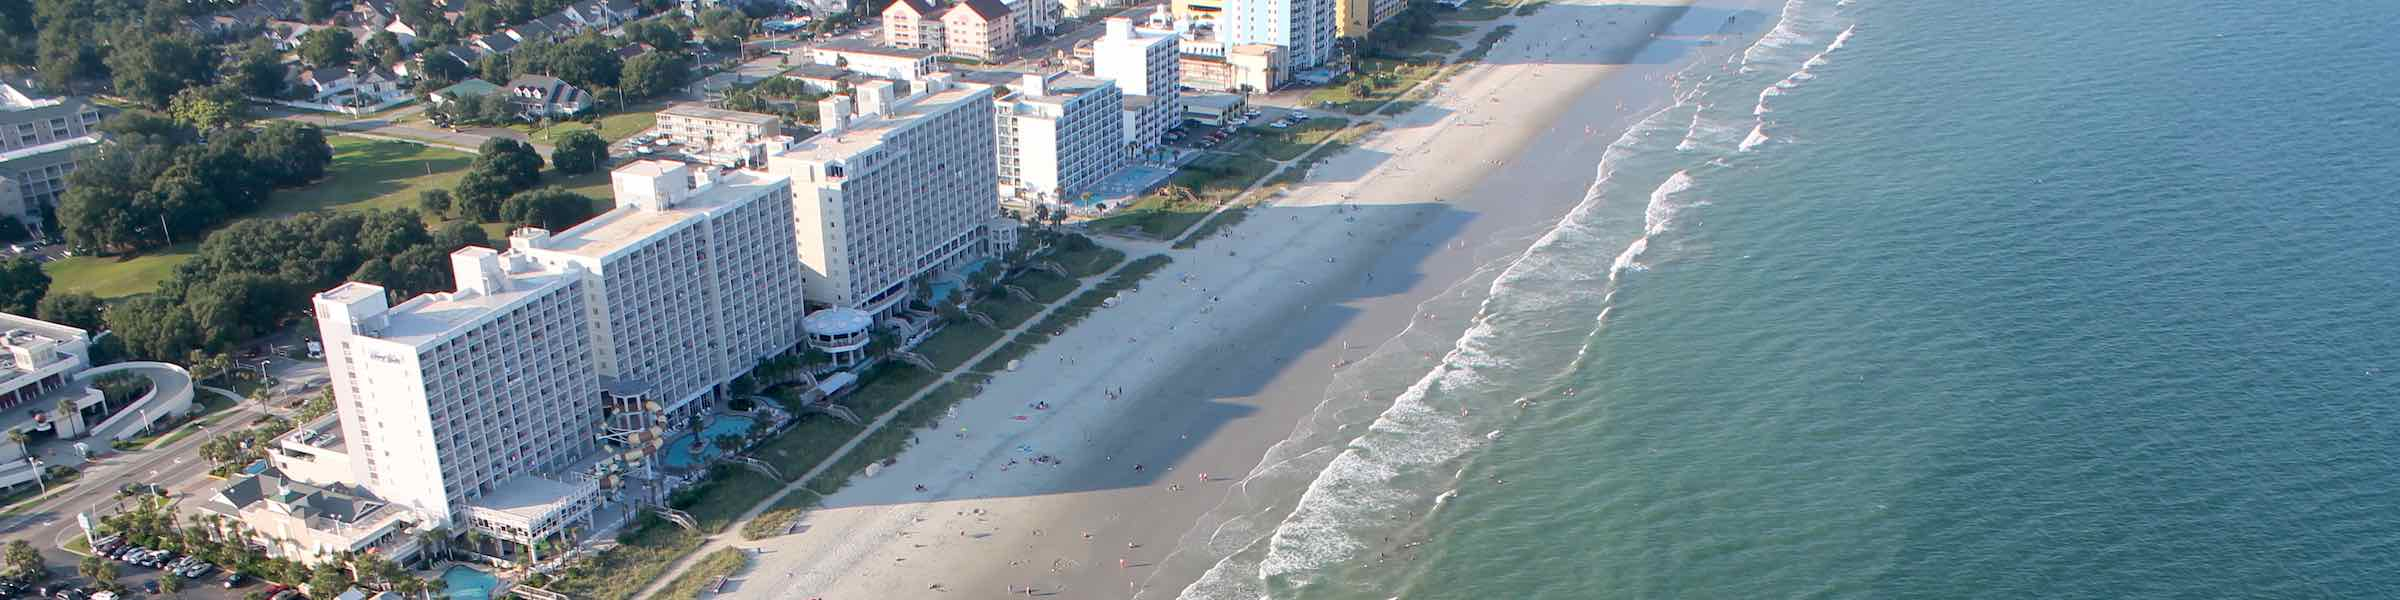 Aerial View Of Beachside Hotels At Myrtle Beach Sc